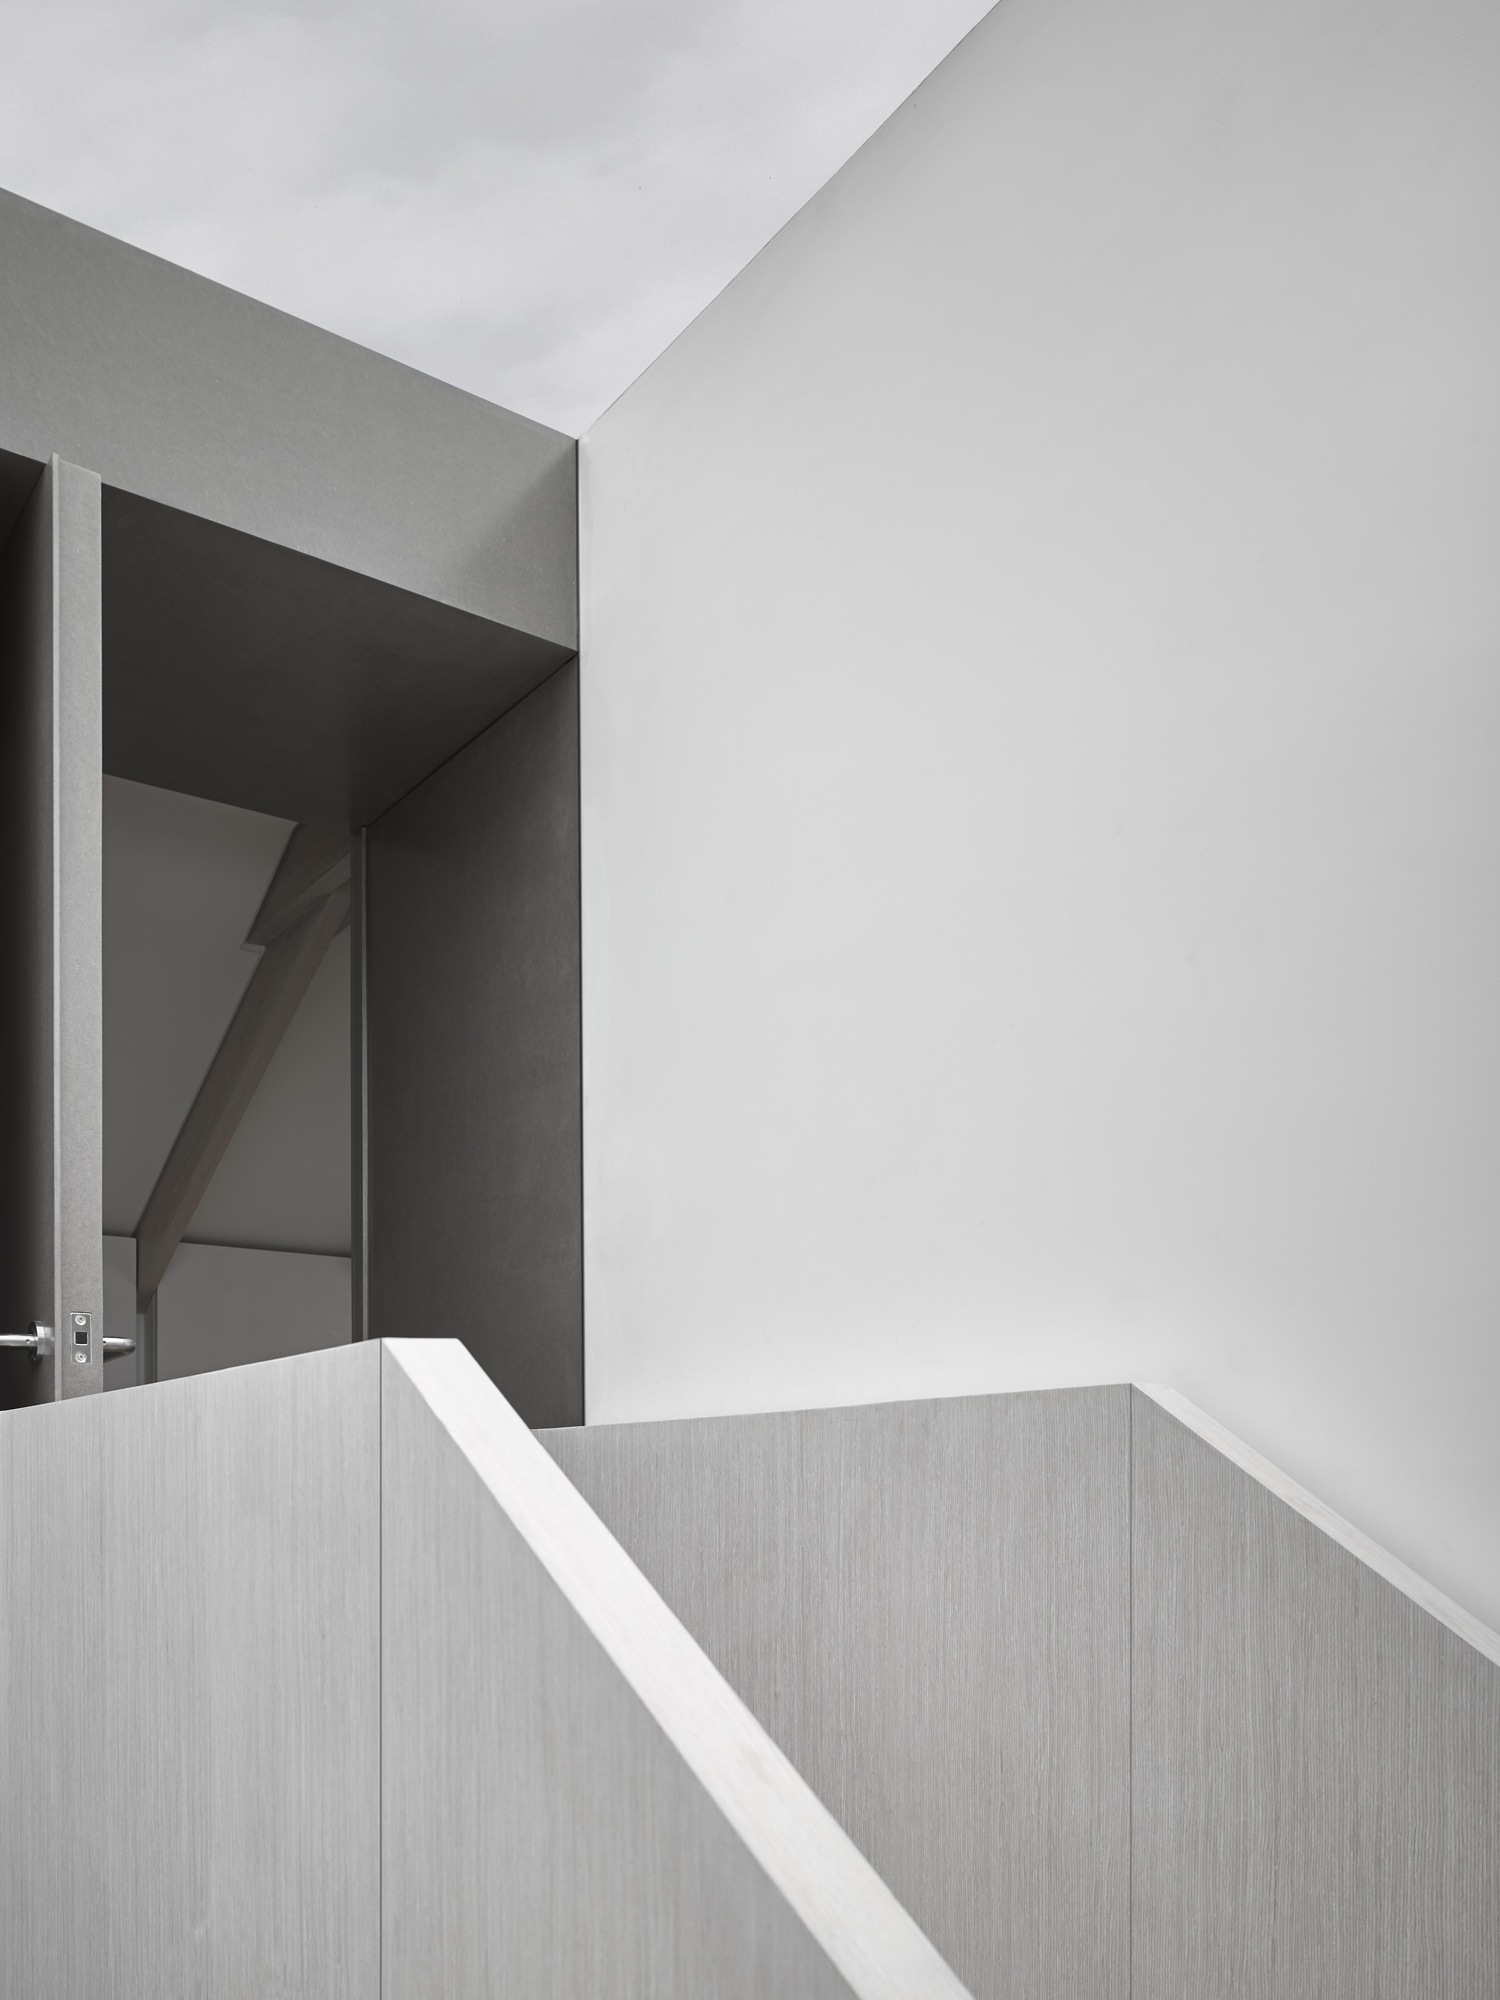 reveal in roof-con_form_architects_03.jpg